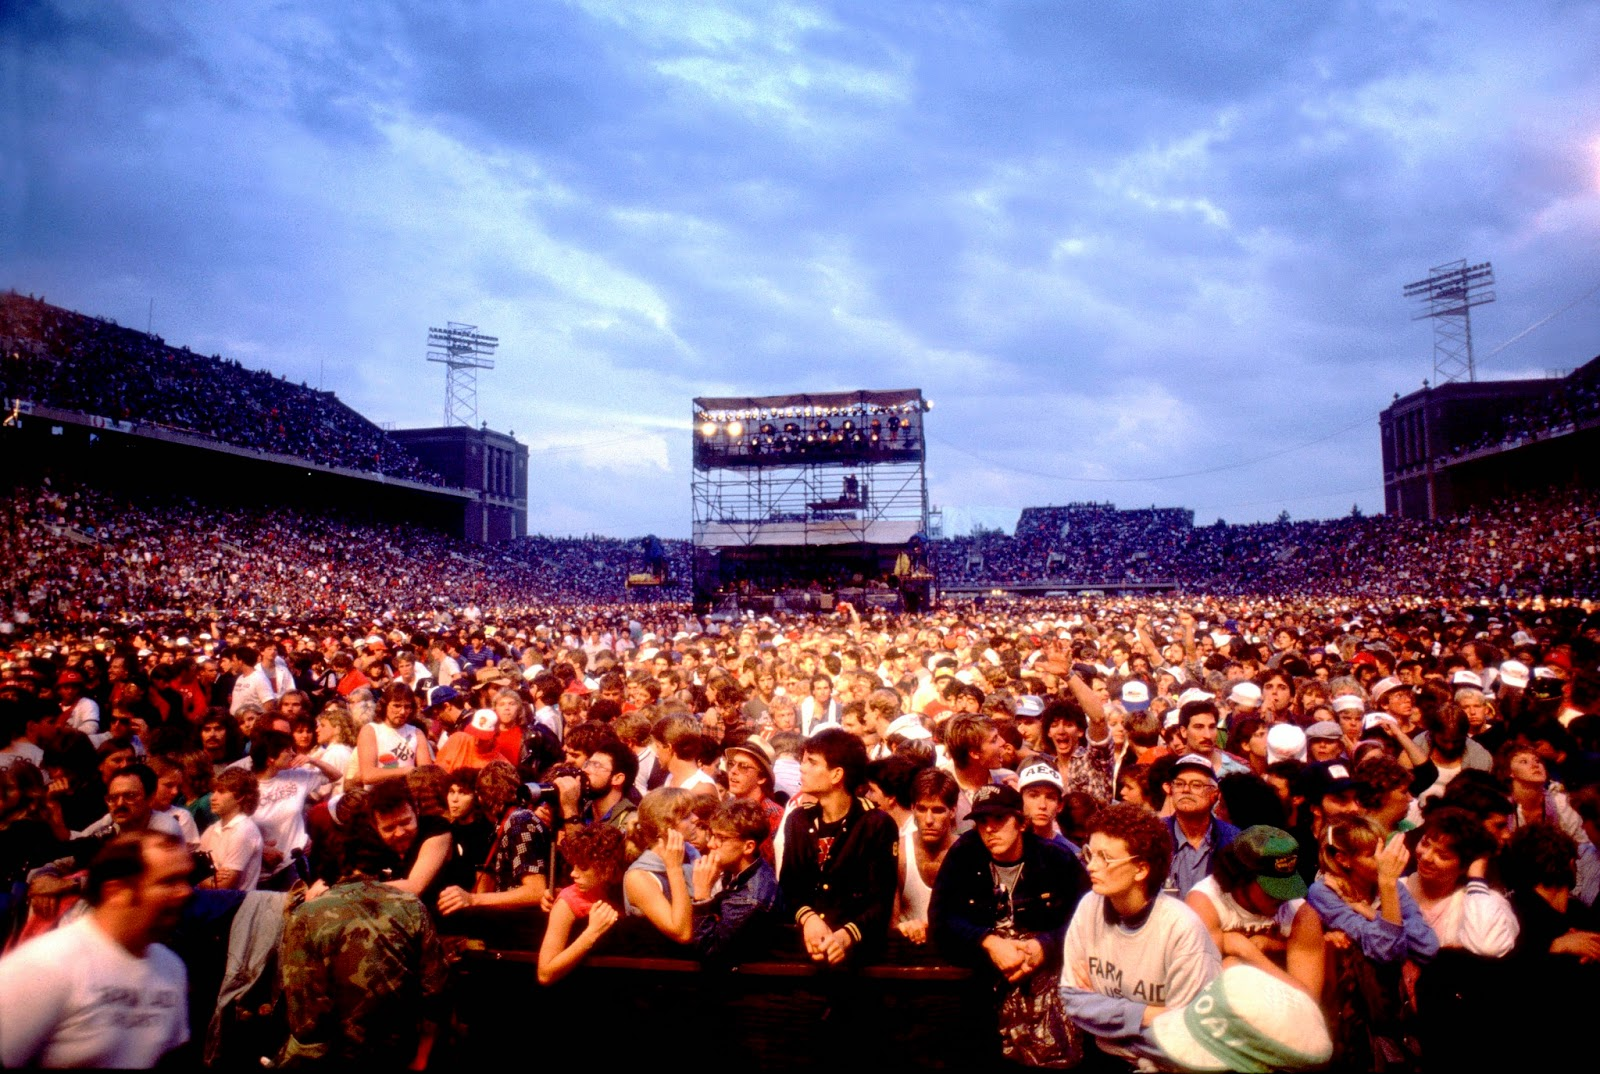 Farm Aid 1985 Crowd